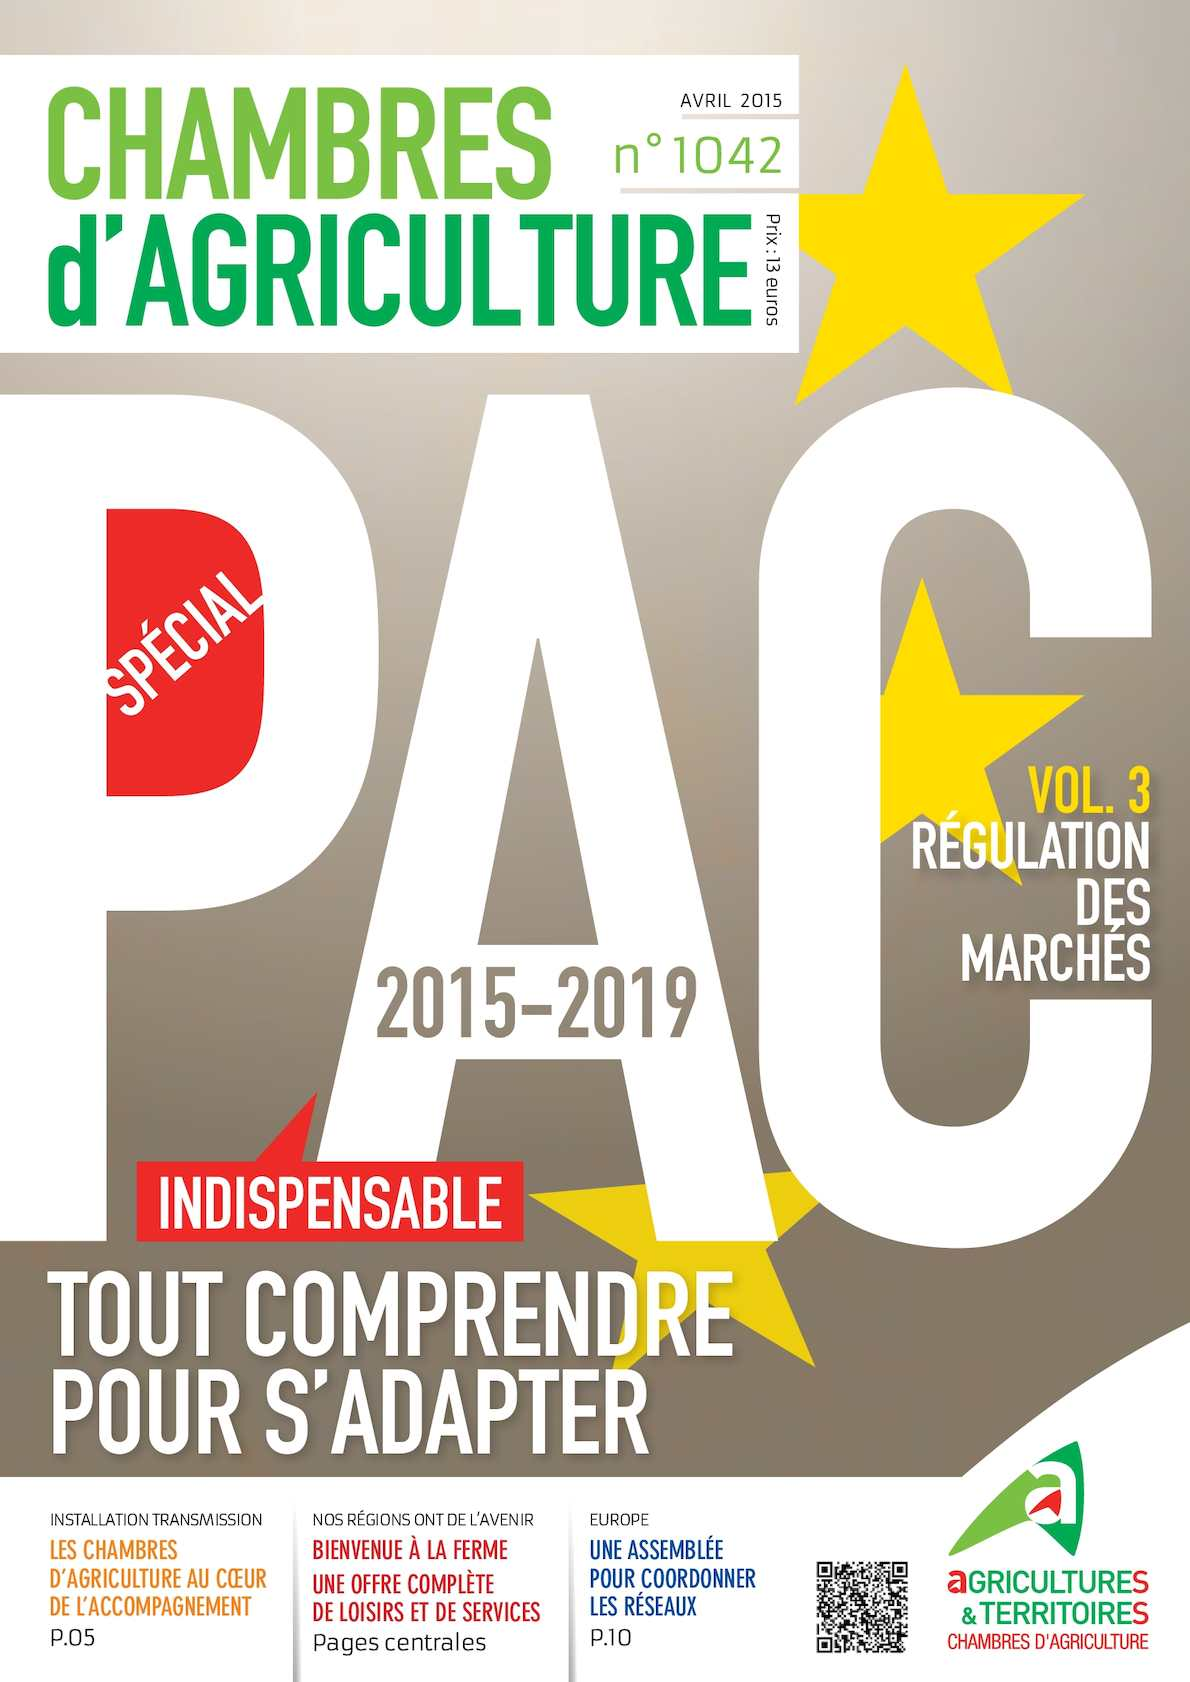 Calam o revue chambres agriculture 1042 avril 2015 - Assemblee permanente des chambres d agriculture ...